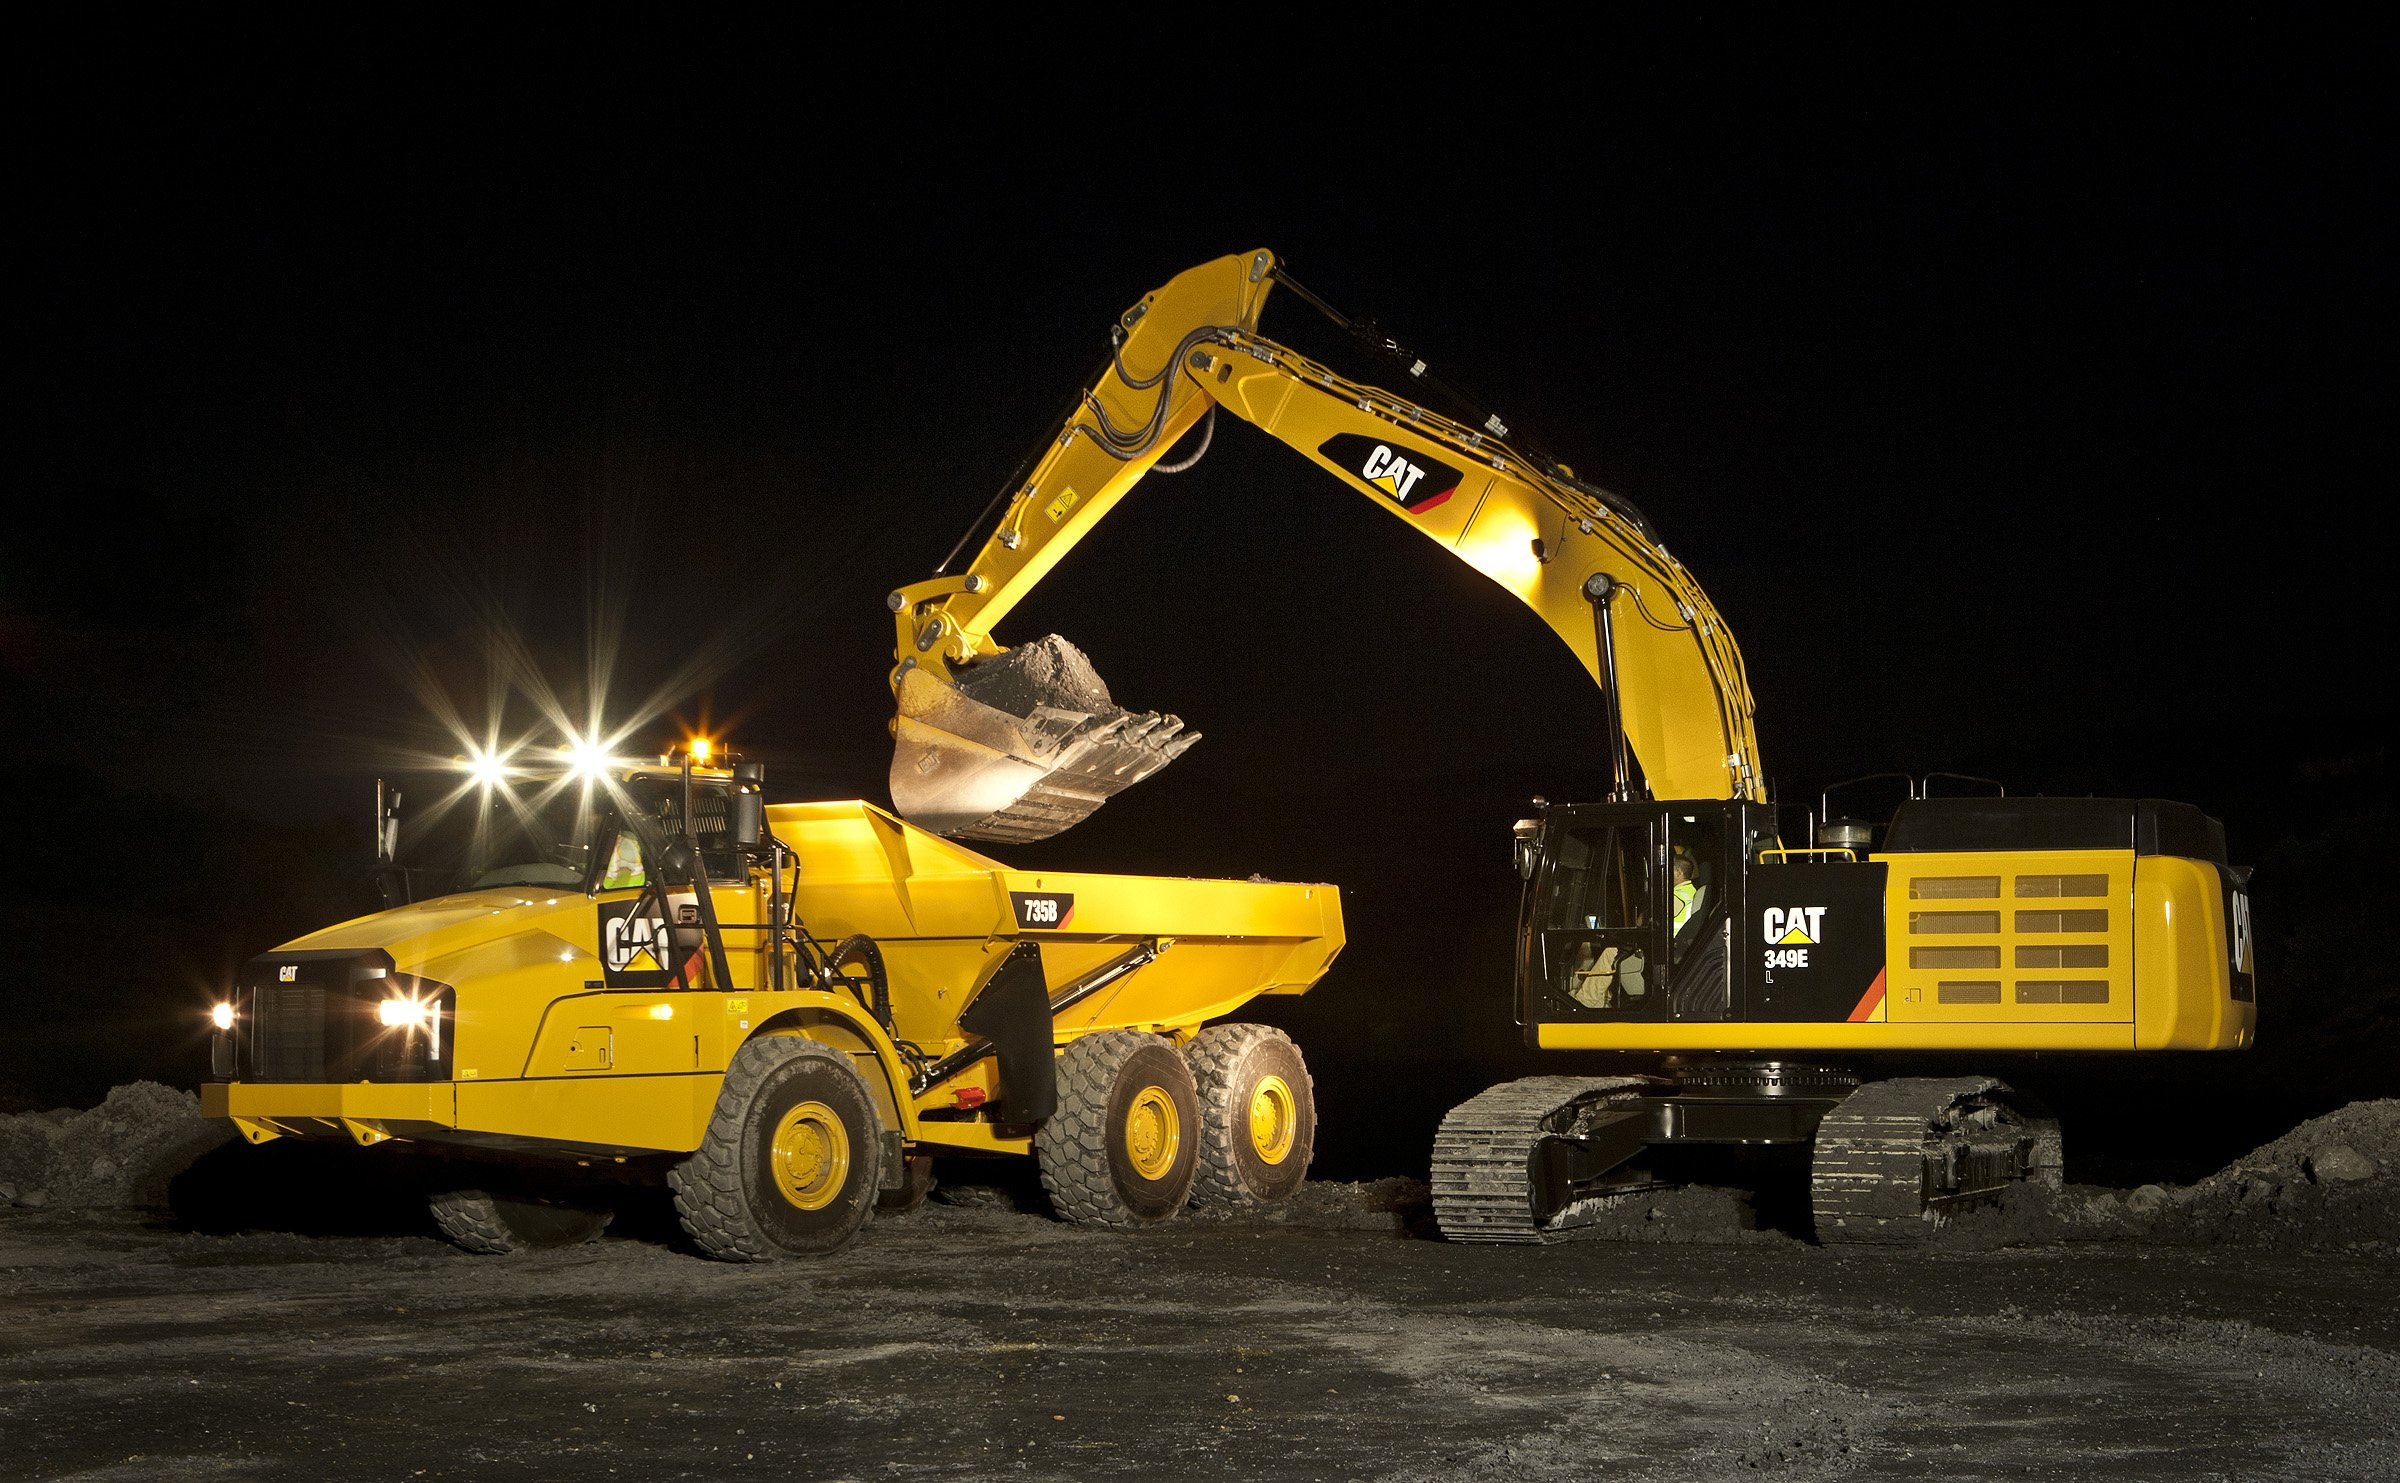 Cat-349E-loading-735B-at-night-C668443